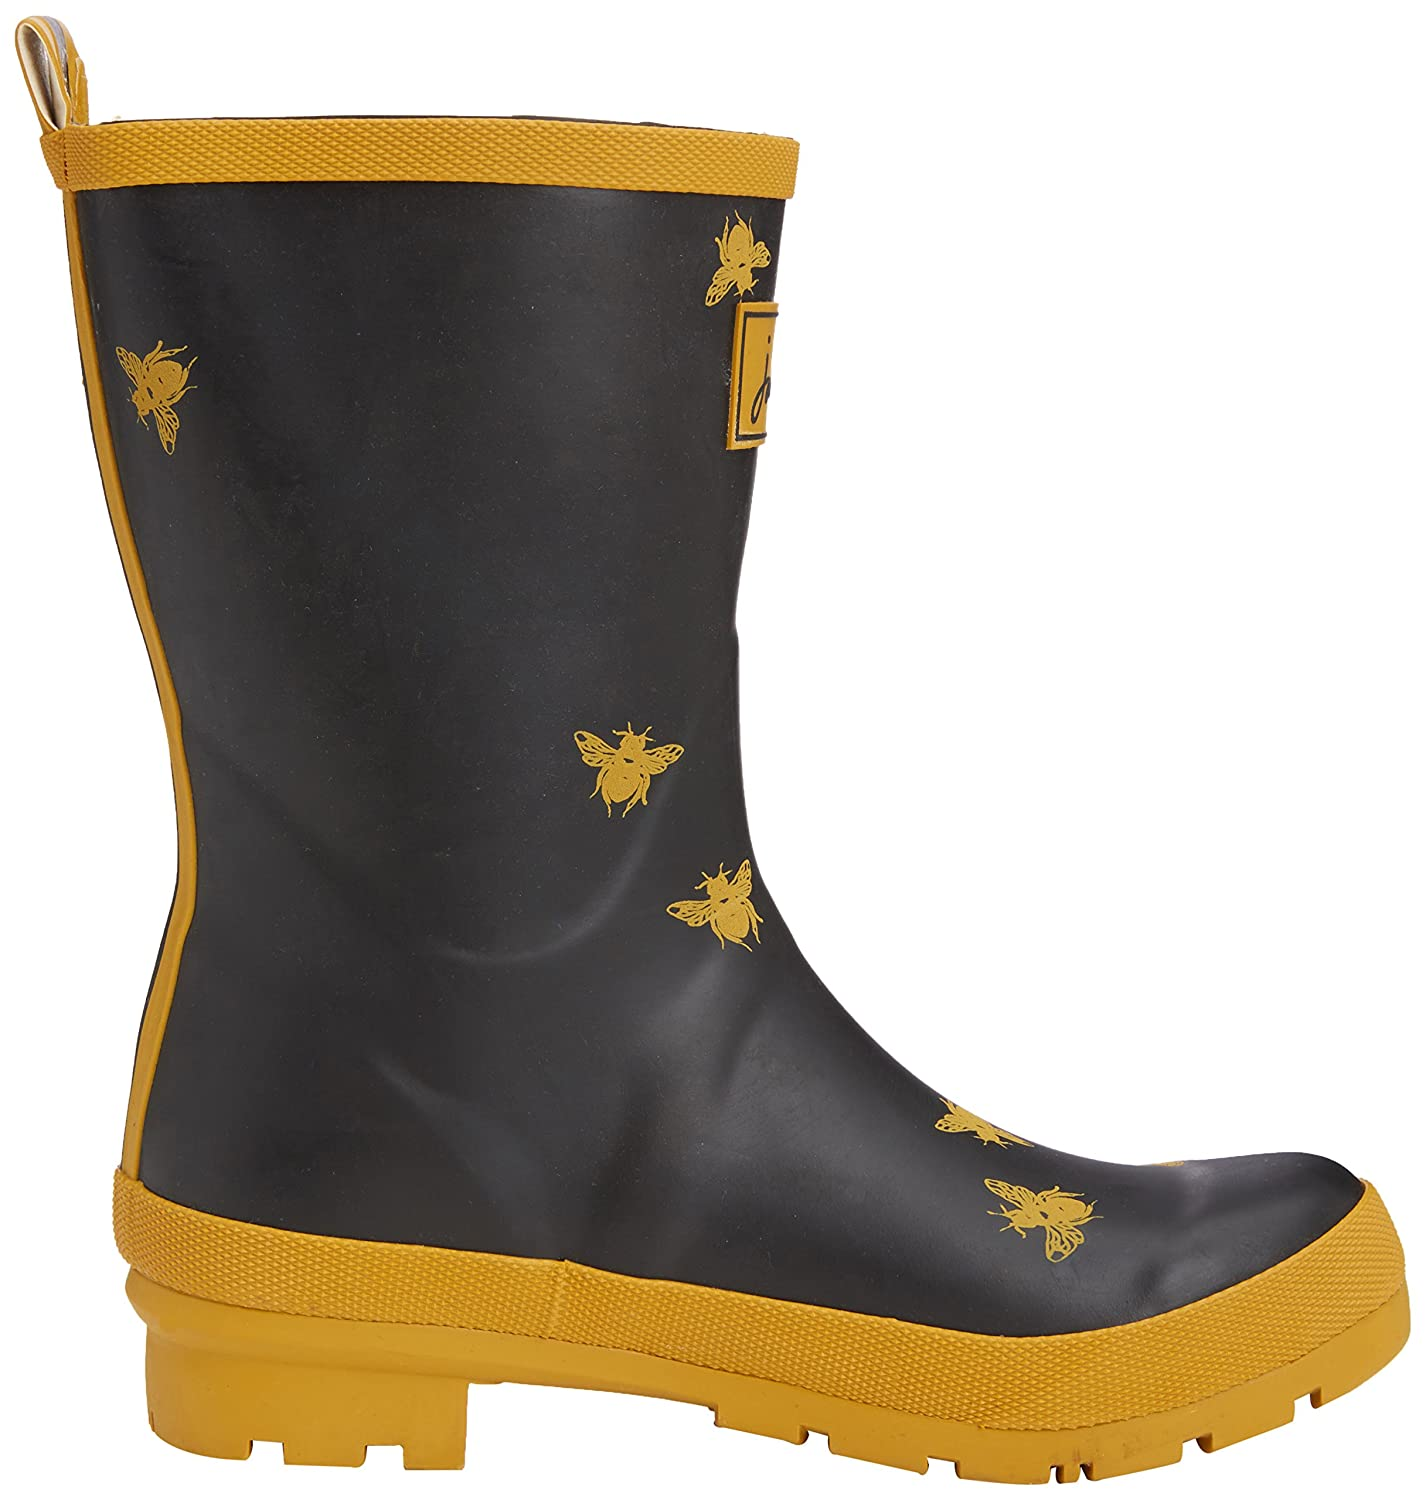 Joules Women's Molly Welly Rain Boot B07CXR27HK Women's 6|Black Bees